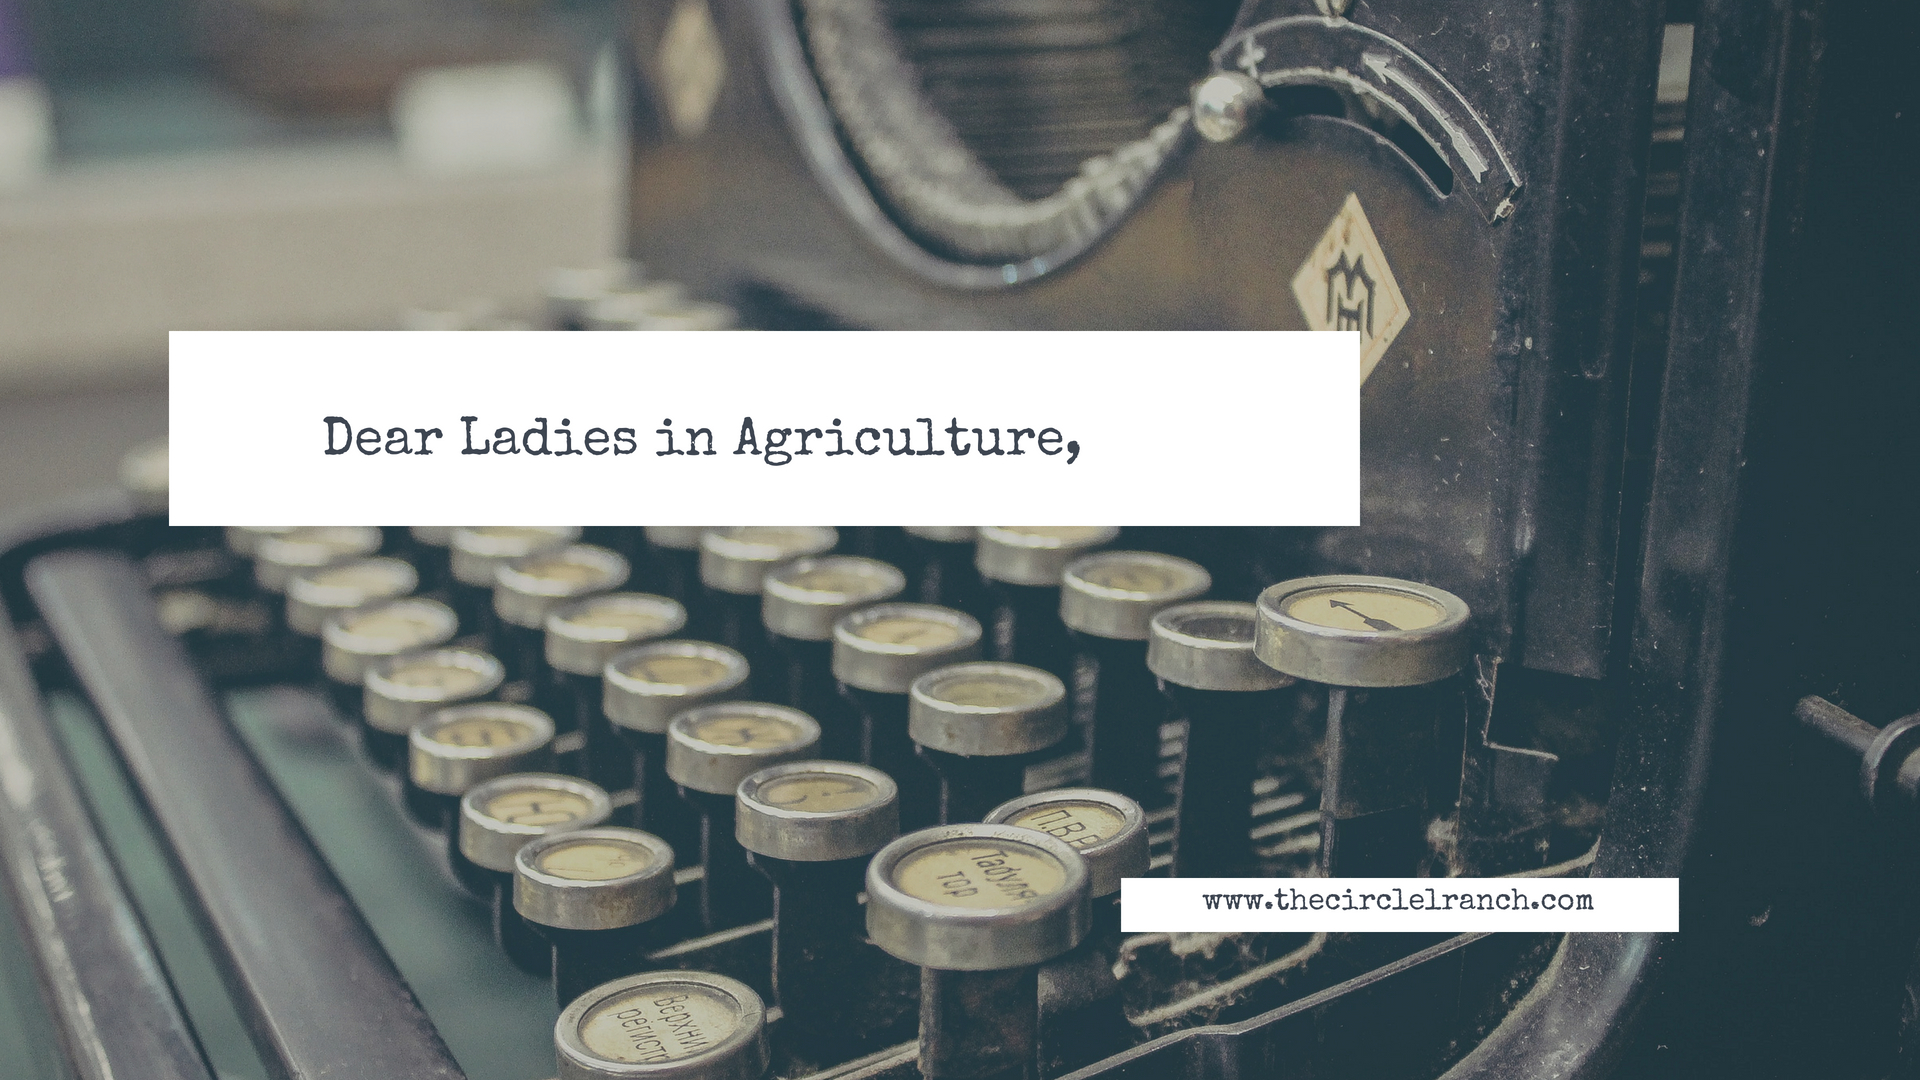 Dear Ladies In Agriculture,